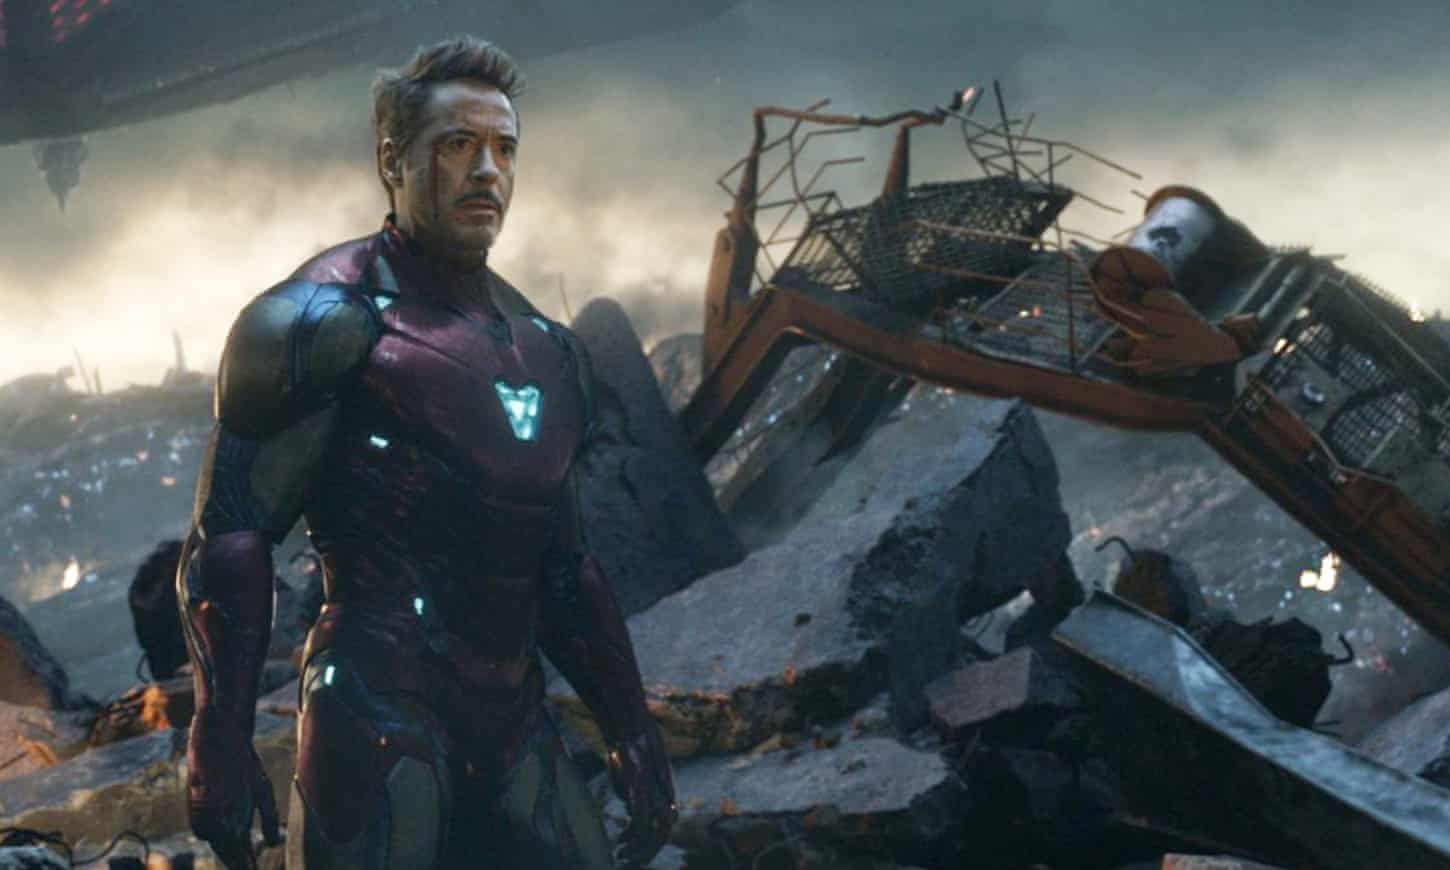 Bringing back Robert Downey Jr's Iron Man for the Black Widow movie is cheating